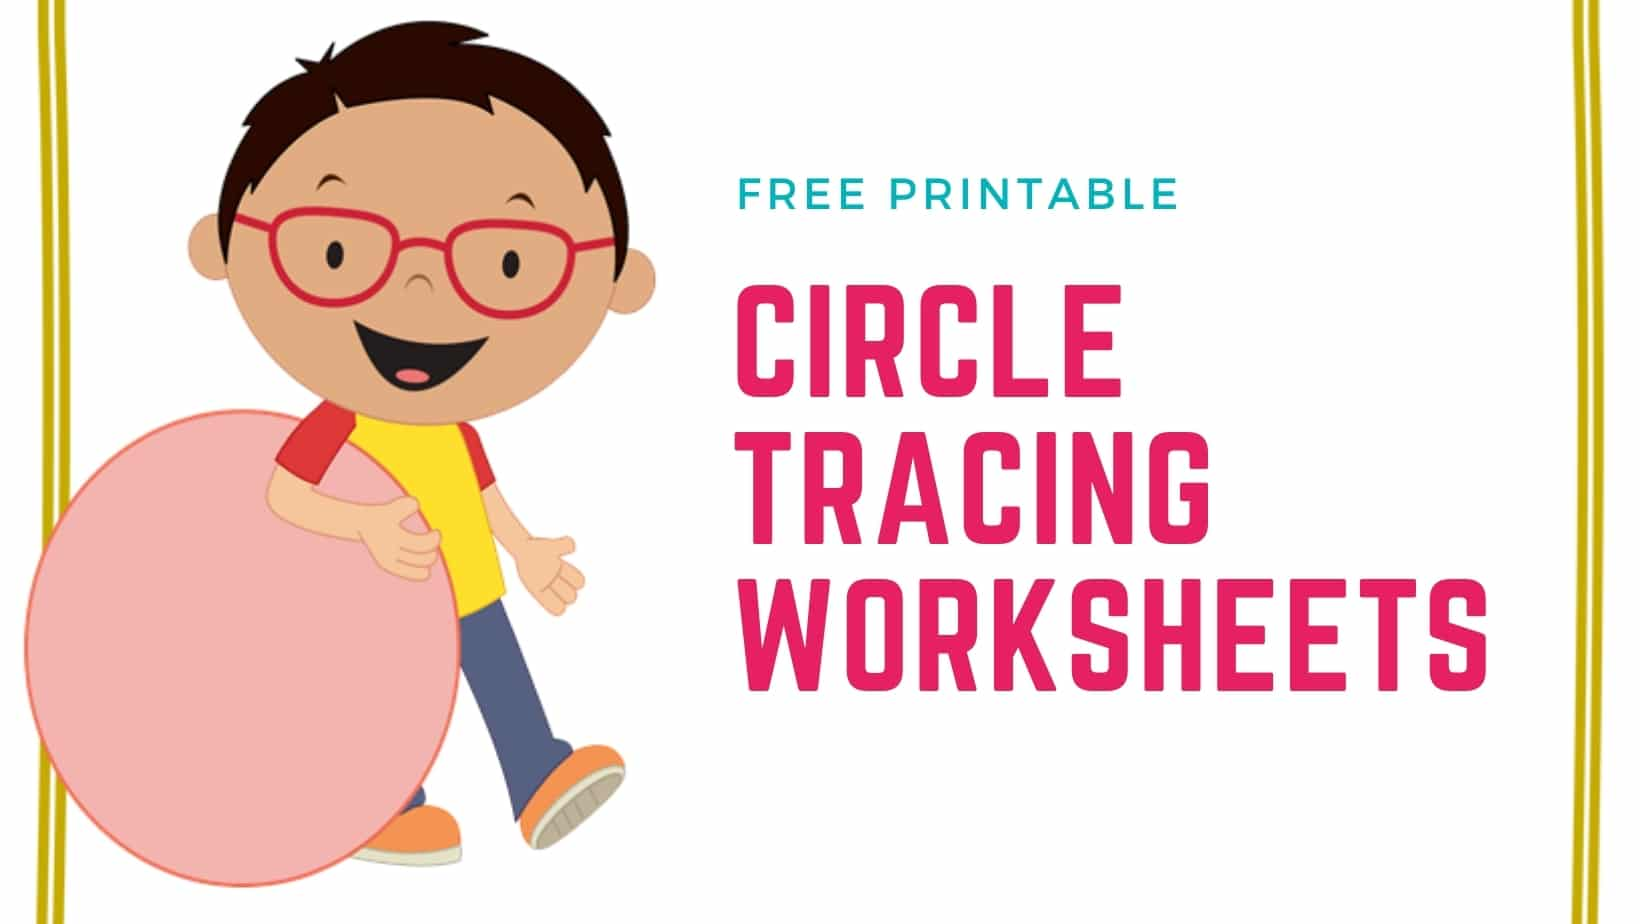 Circle Tracing Worksheets for Kids